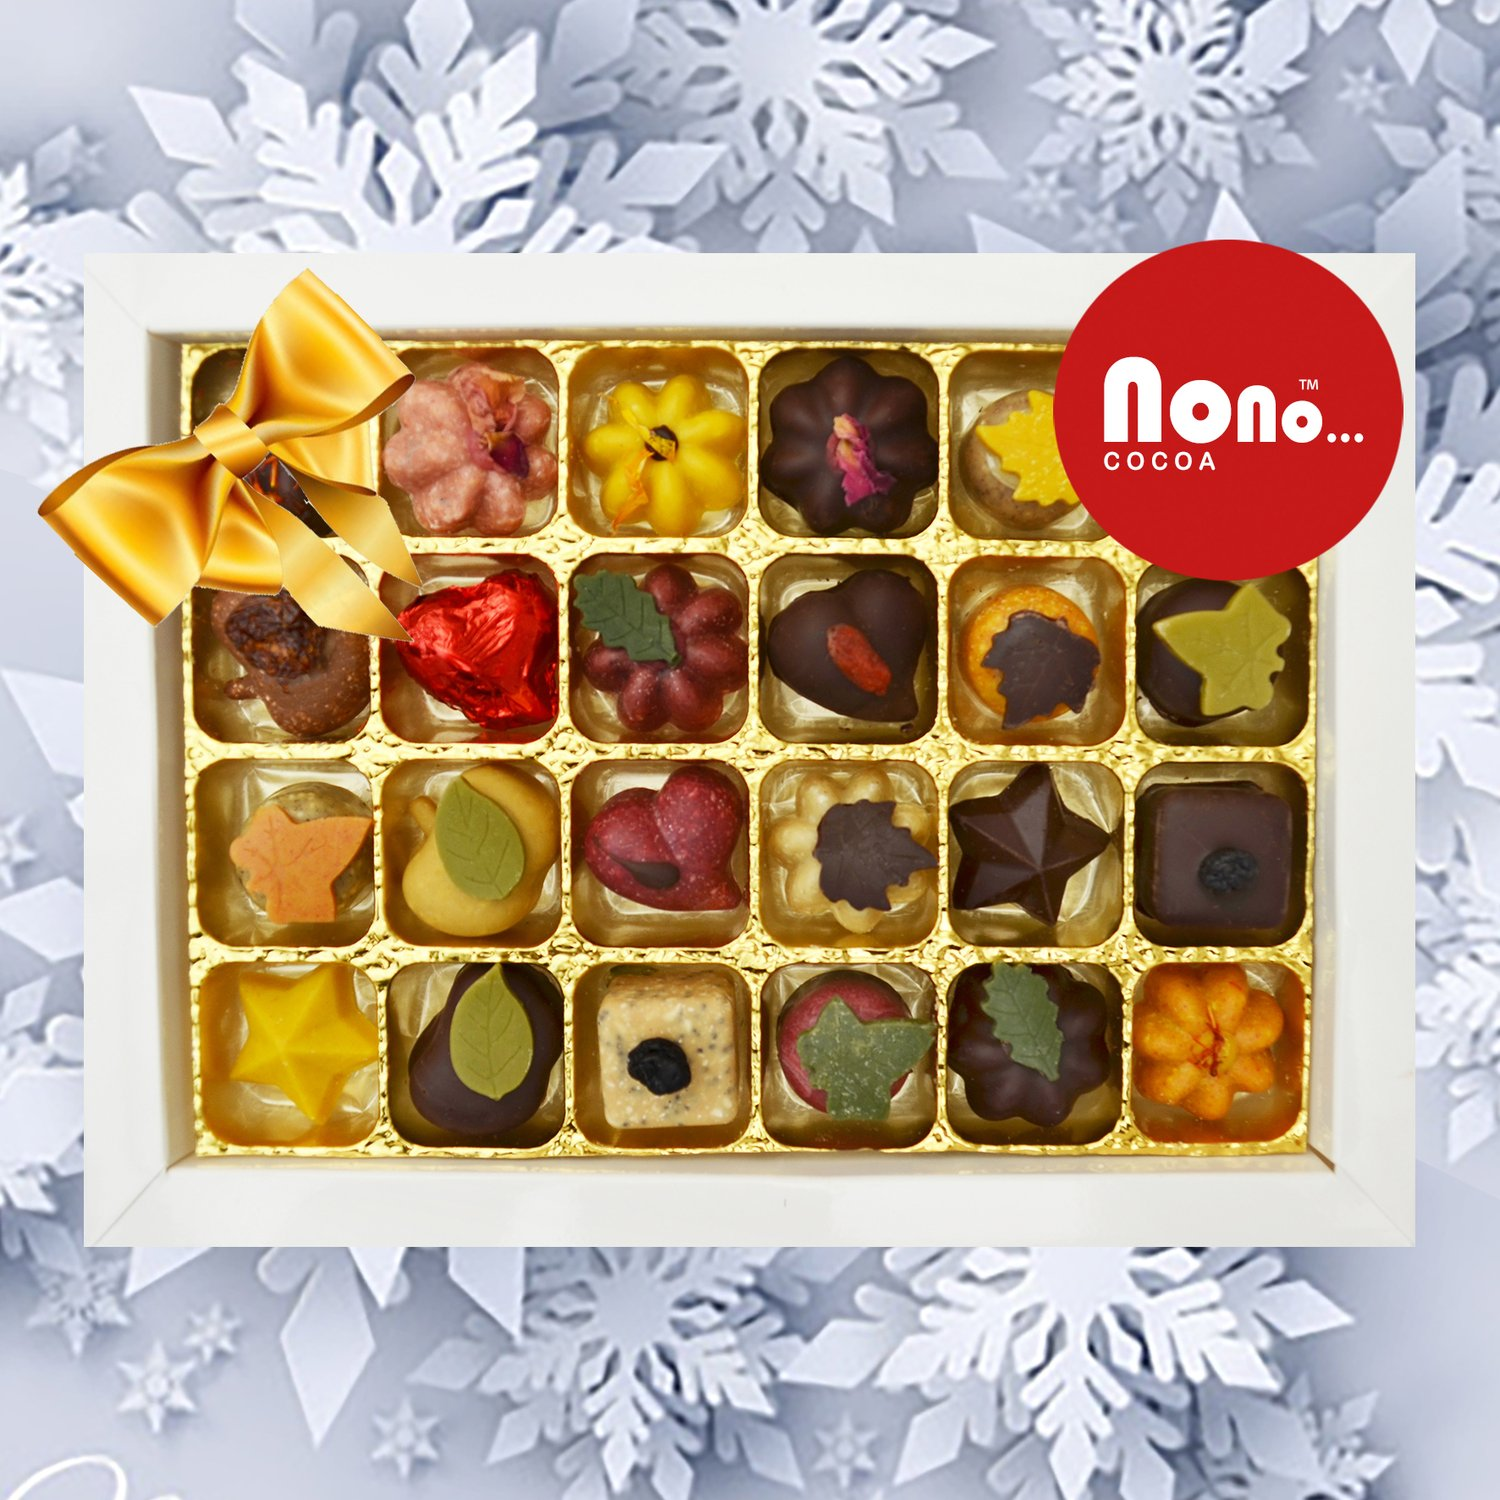 Nono_chocolate_advent_calendar_free-from_functional_foods__3_1500x1500.jpg